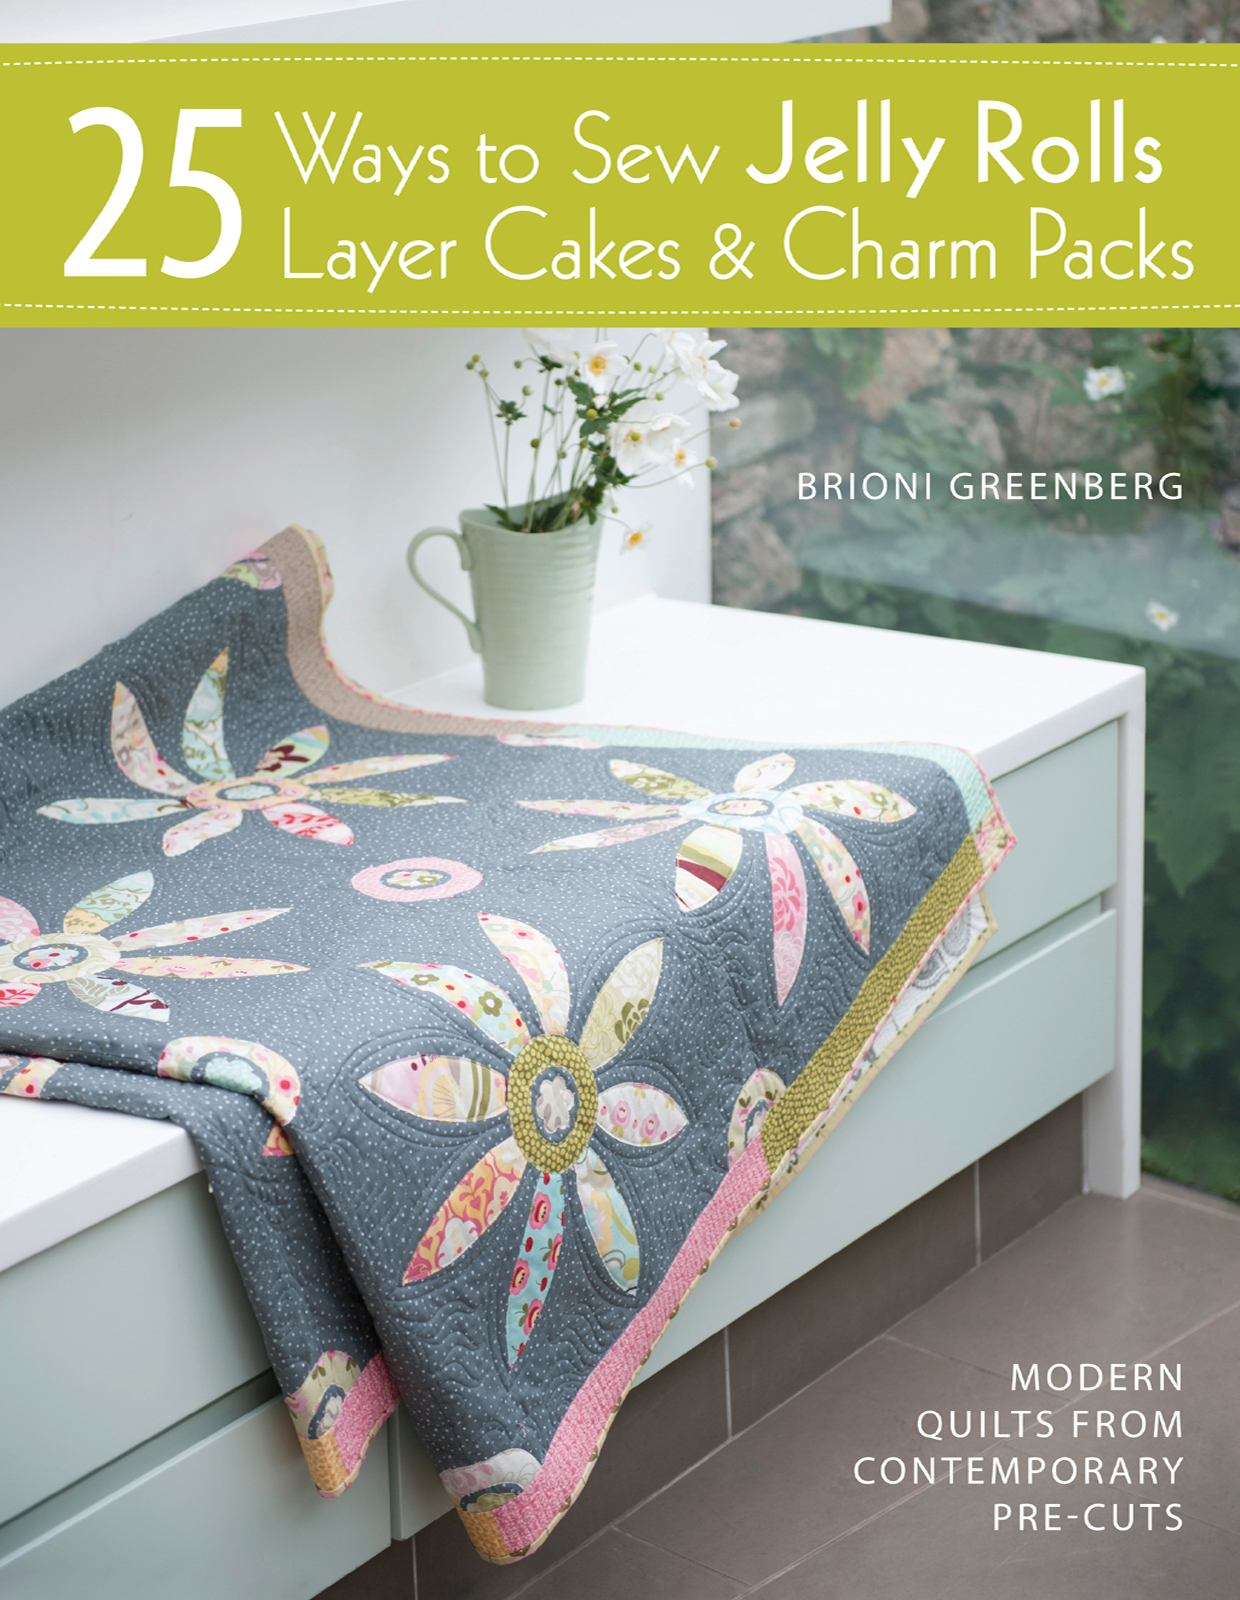 25 Ways to Sew Jelly Rolls, Layer Cakes & Charm Packs Modern Quilt Projects from Contemporary Pre-cuts